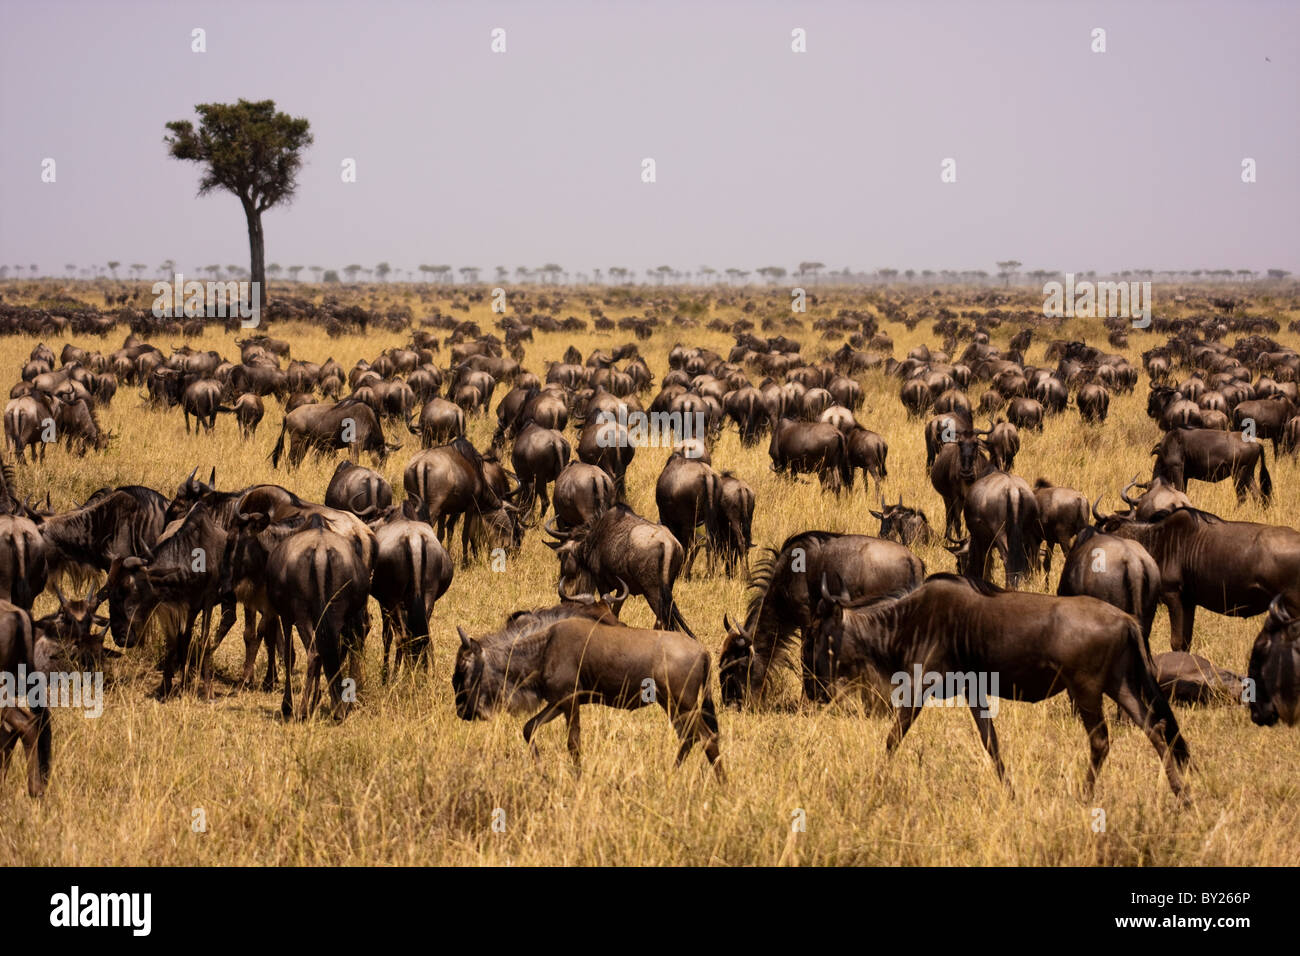 Kenya, Masai Mara.  Wildebeest congregate in their thousands during the migration on the open grassy plains of the Stock Photo